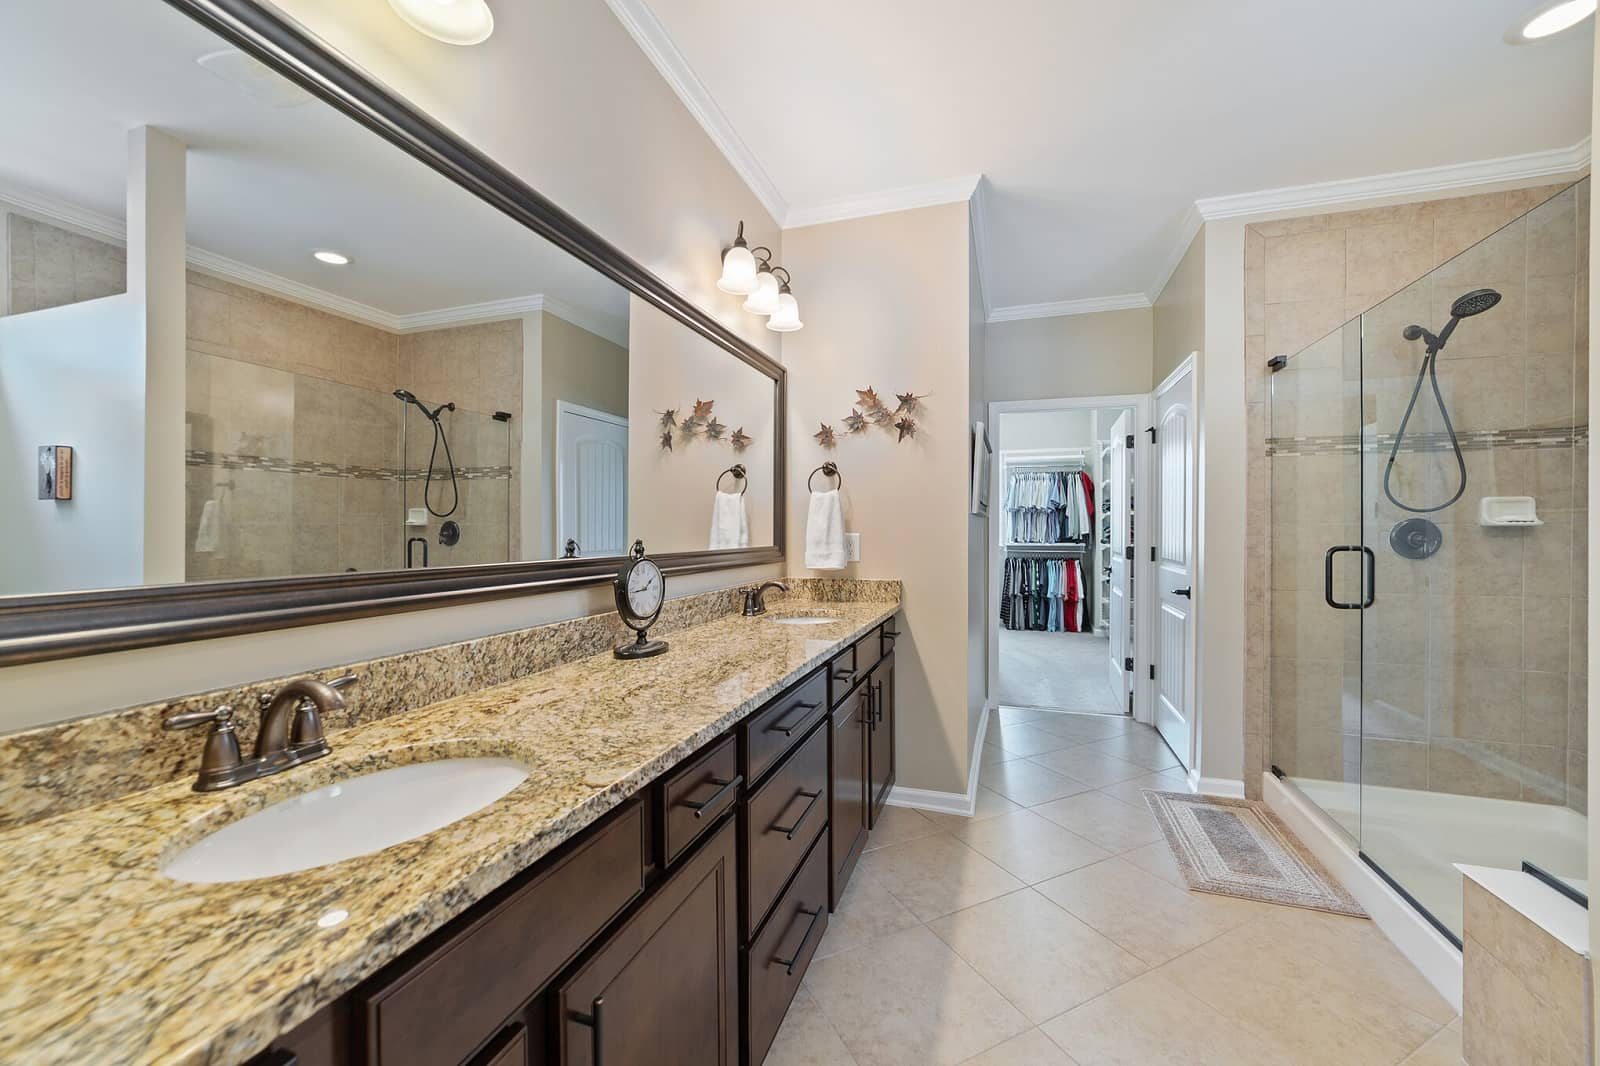 Real Estate Photography in Durham - NC - USA - Bathroom View